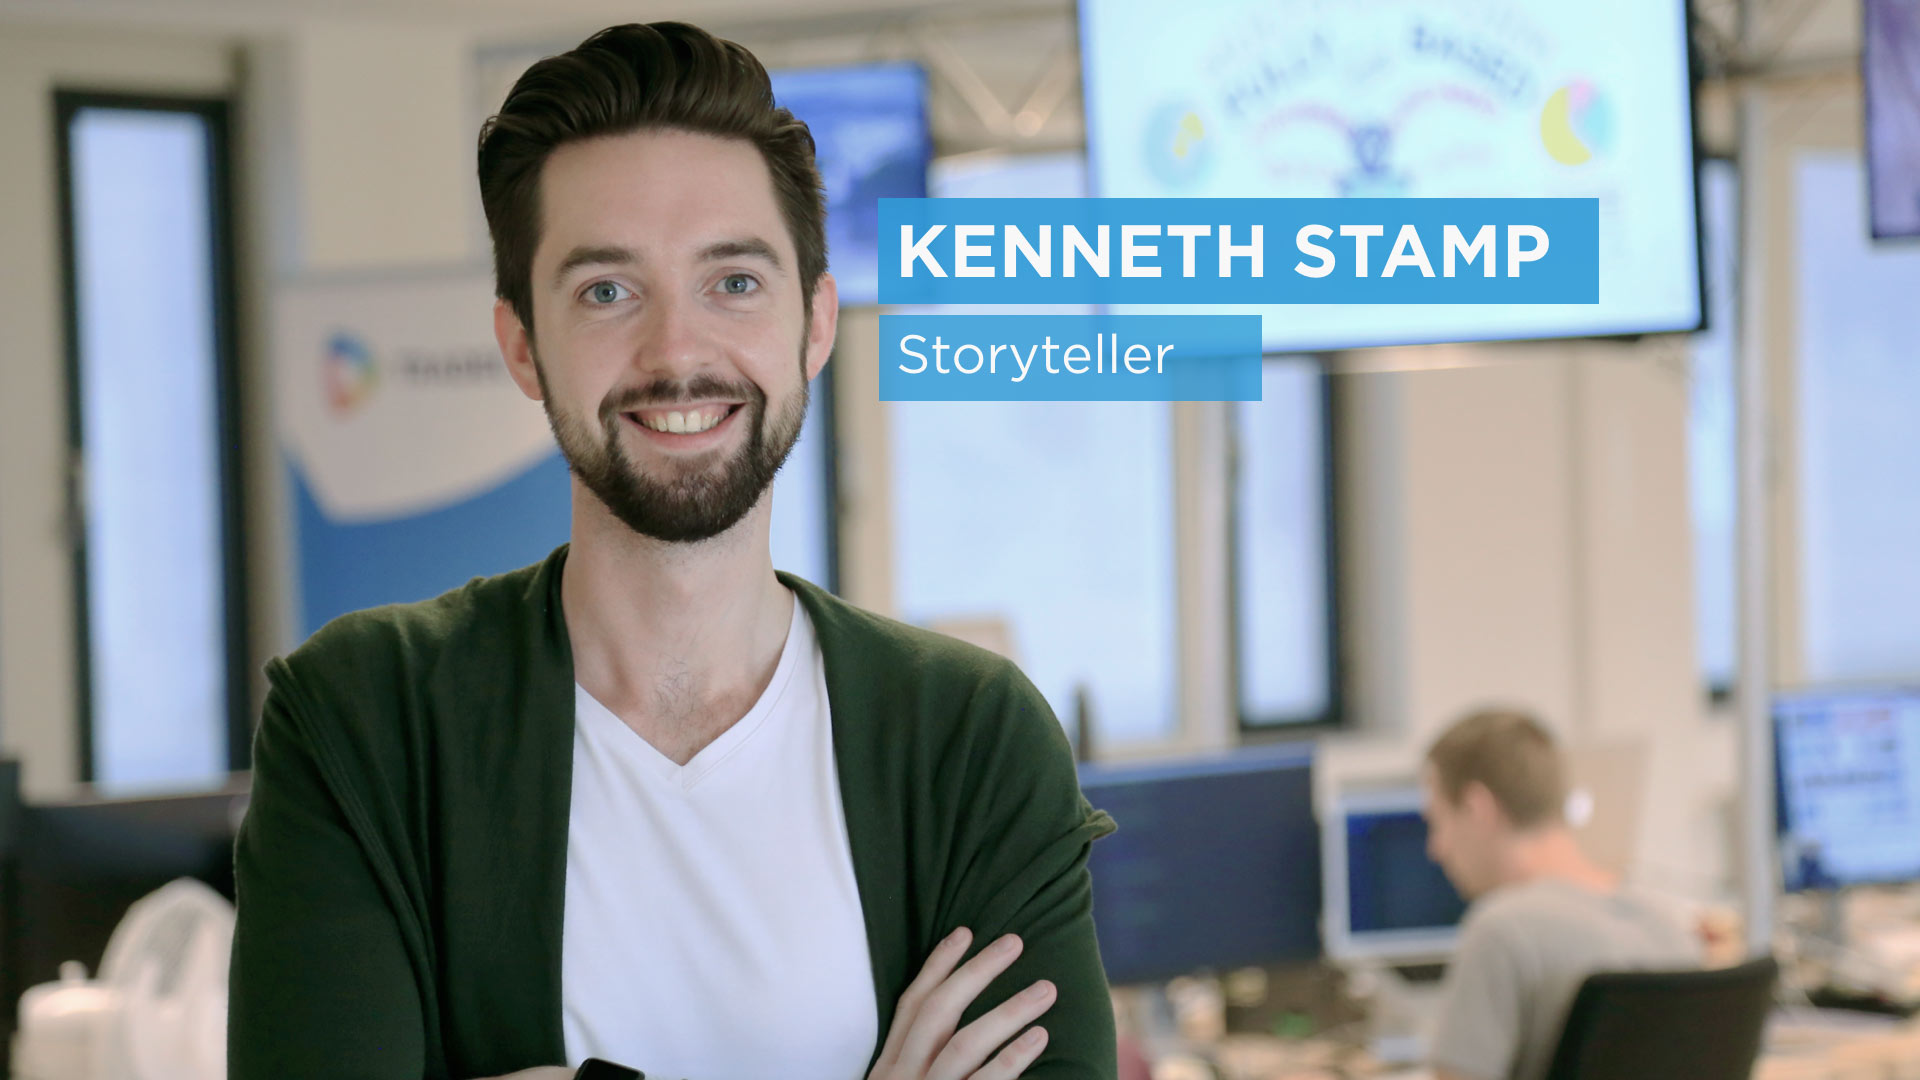 Meet Kenneth, our brand new storyteller at TradeCast